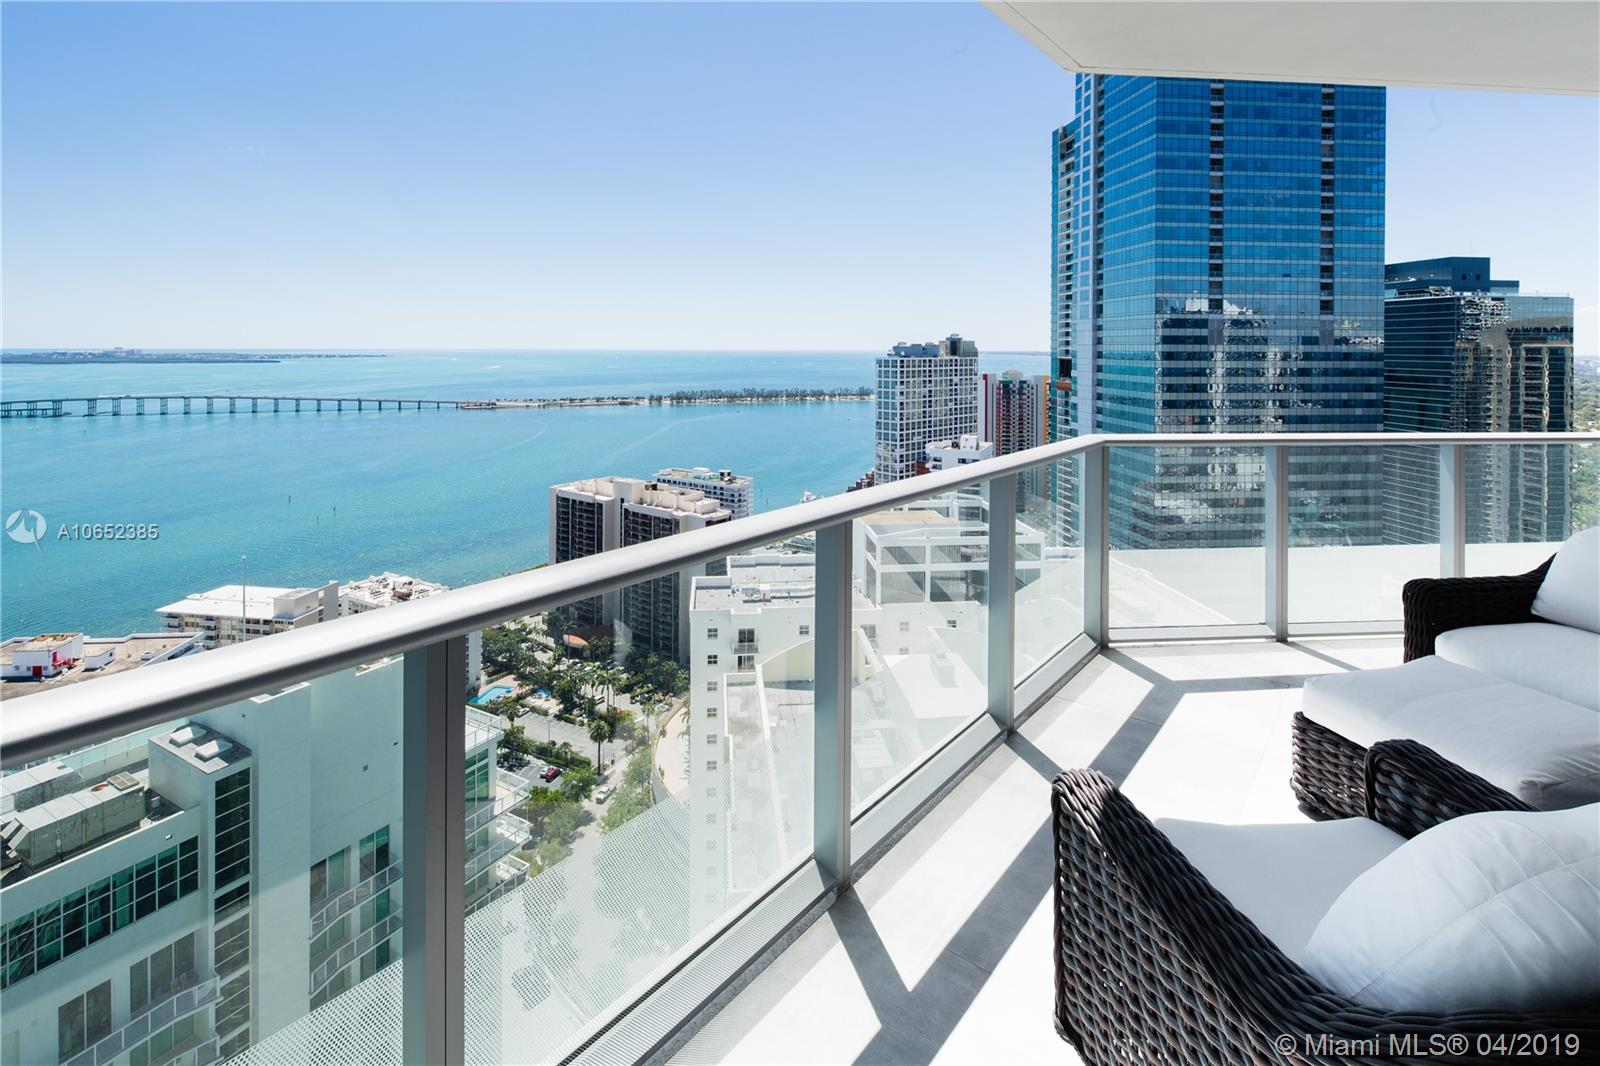 Incredible lower penthouse at Brickell House designed by European Architect. Enjoy a spacious 3 bedrooms + den and 3,5 bathrooms with panoramic views of Biscayne Bay. This 11 feet ceiling flow through penthouse has two large terraces facing the bay and the Brickell skyline to enjoy sunrises and sunsets. Five stars amenities include 24hr concierge and valet services, 10 ft theater, pool deck, spa and cabanas, the 14th floor and rooftop infinity pools and 2 robotic spaces.